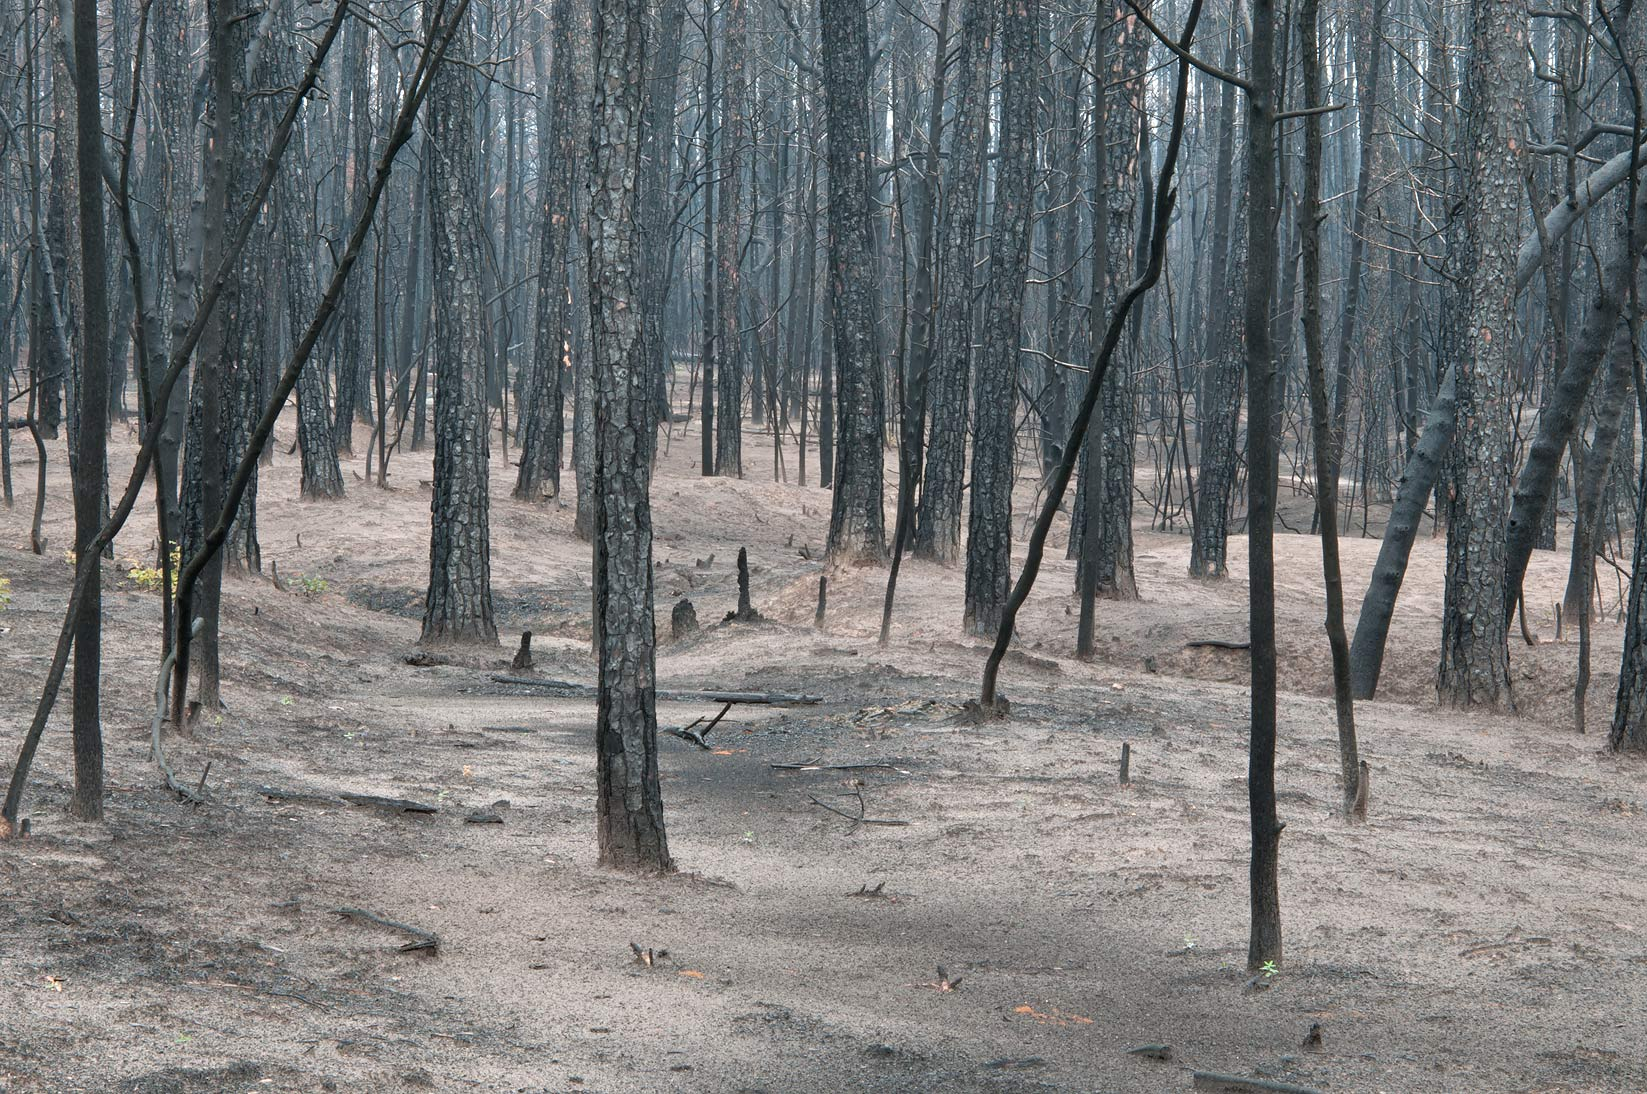 Burnt forest in Bastrop State Park. Bastrop, Texas